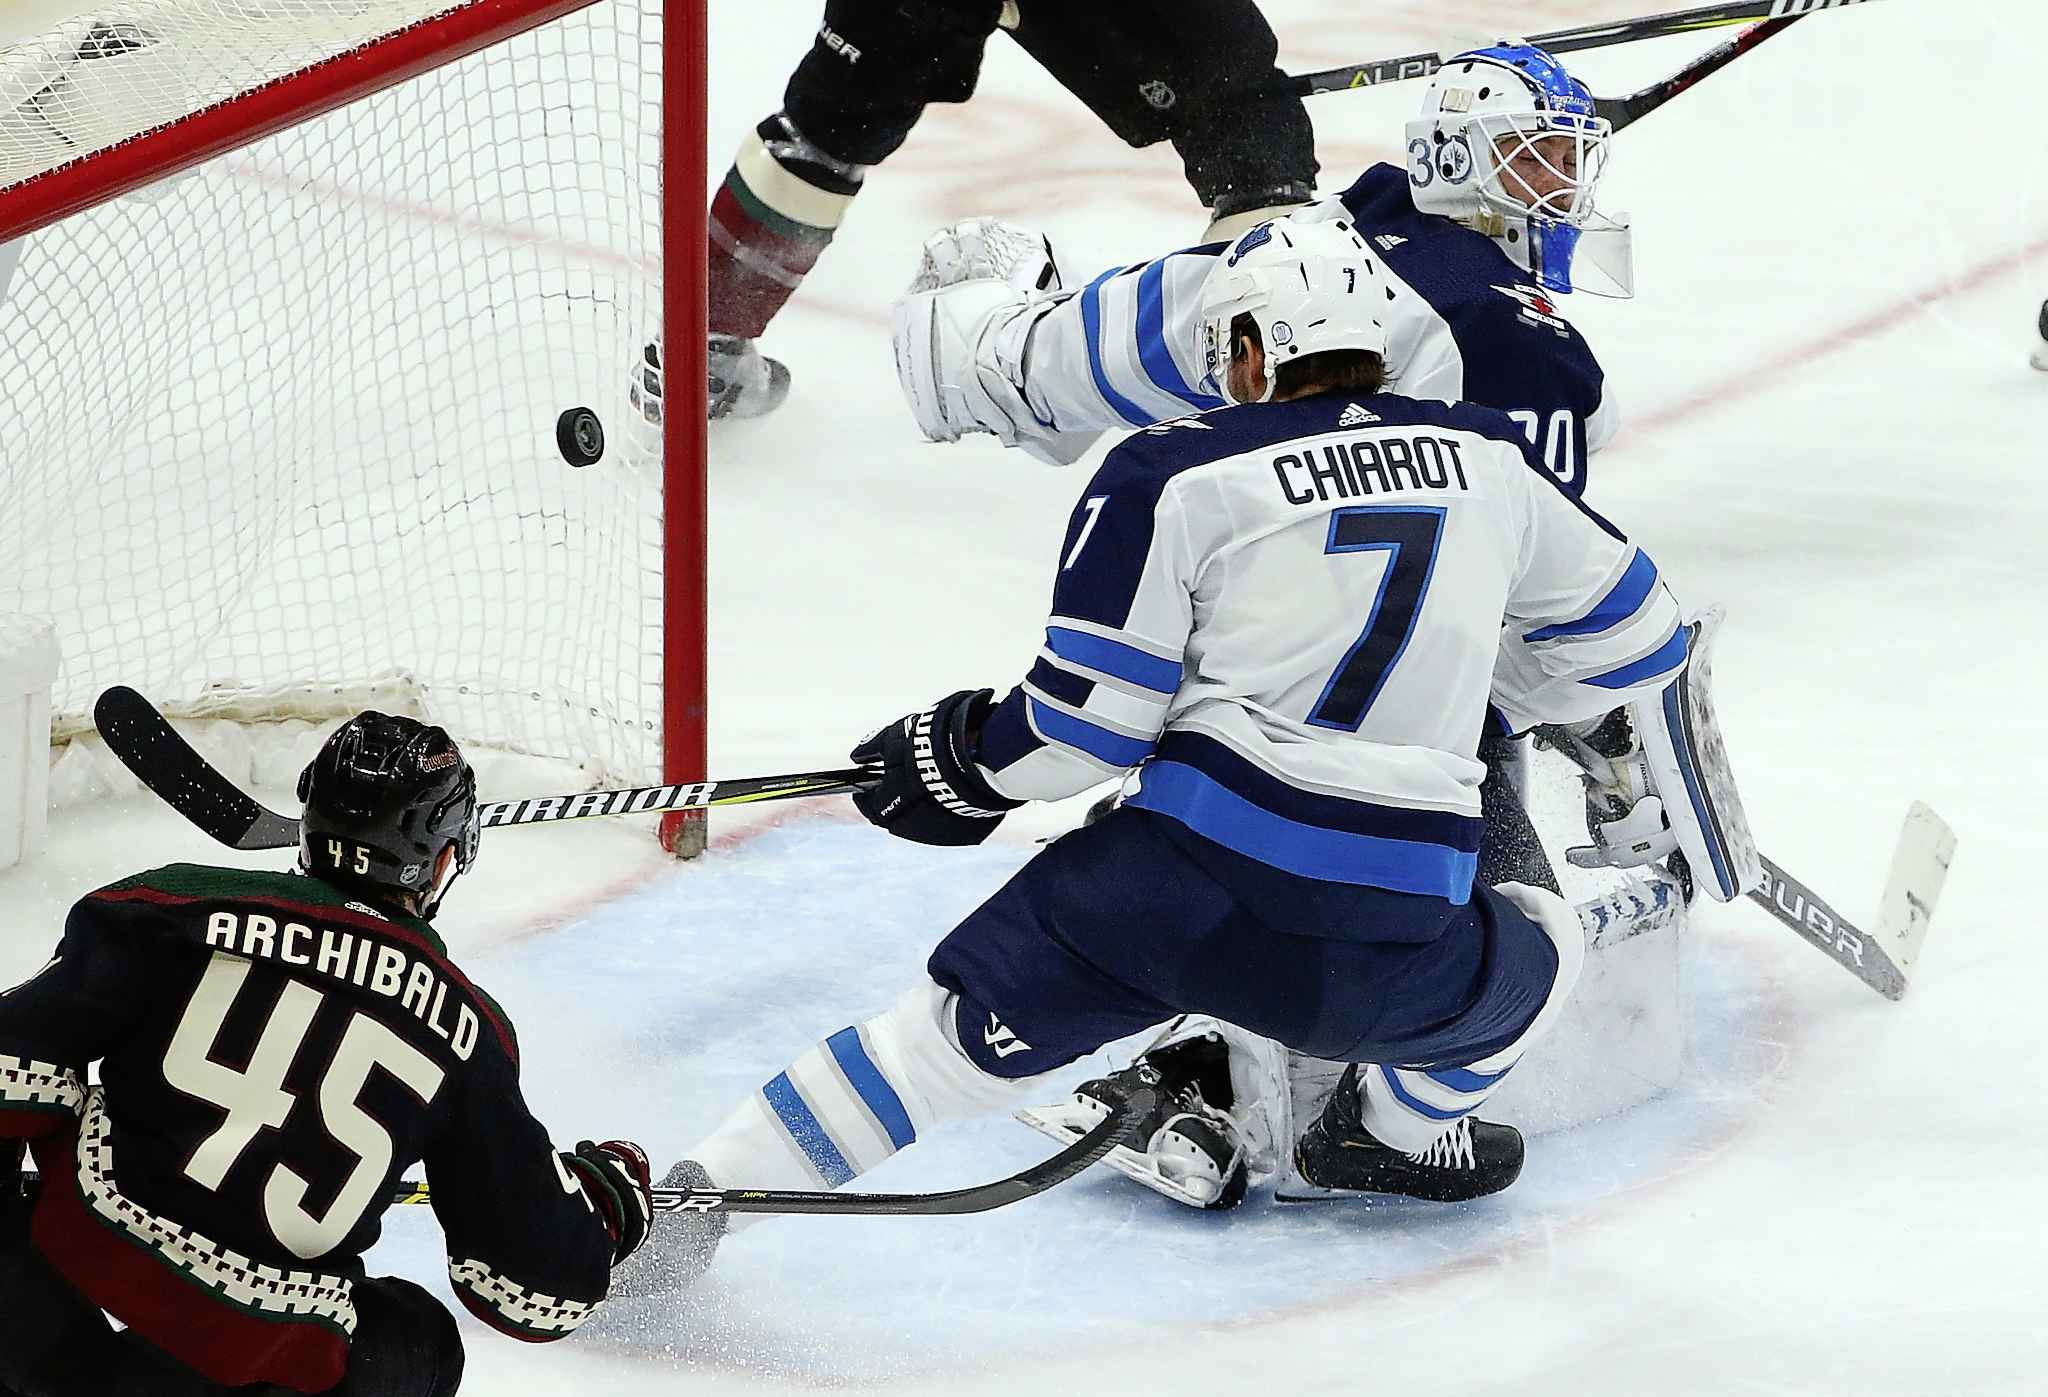 ROSS D. FRANKLIN / THE ASSOCIATED PRESS</p><p>A shot by Arizona Coyotes' Lawson Crouse goes off of Winnipeg Jets defenseman Ben Chiarot (7) and past Jets goaltender Laurent Brossoit, right, for a goal as Coyotes right wing Josh Archibald (45) looks on during the second period of an NHL hockey game Sunday, Feb. 24, 2019, in Glendale, Ariz.</p>